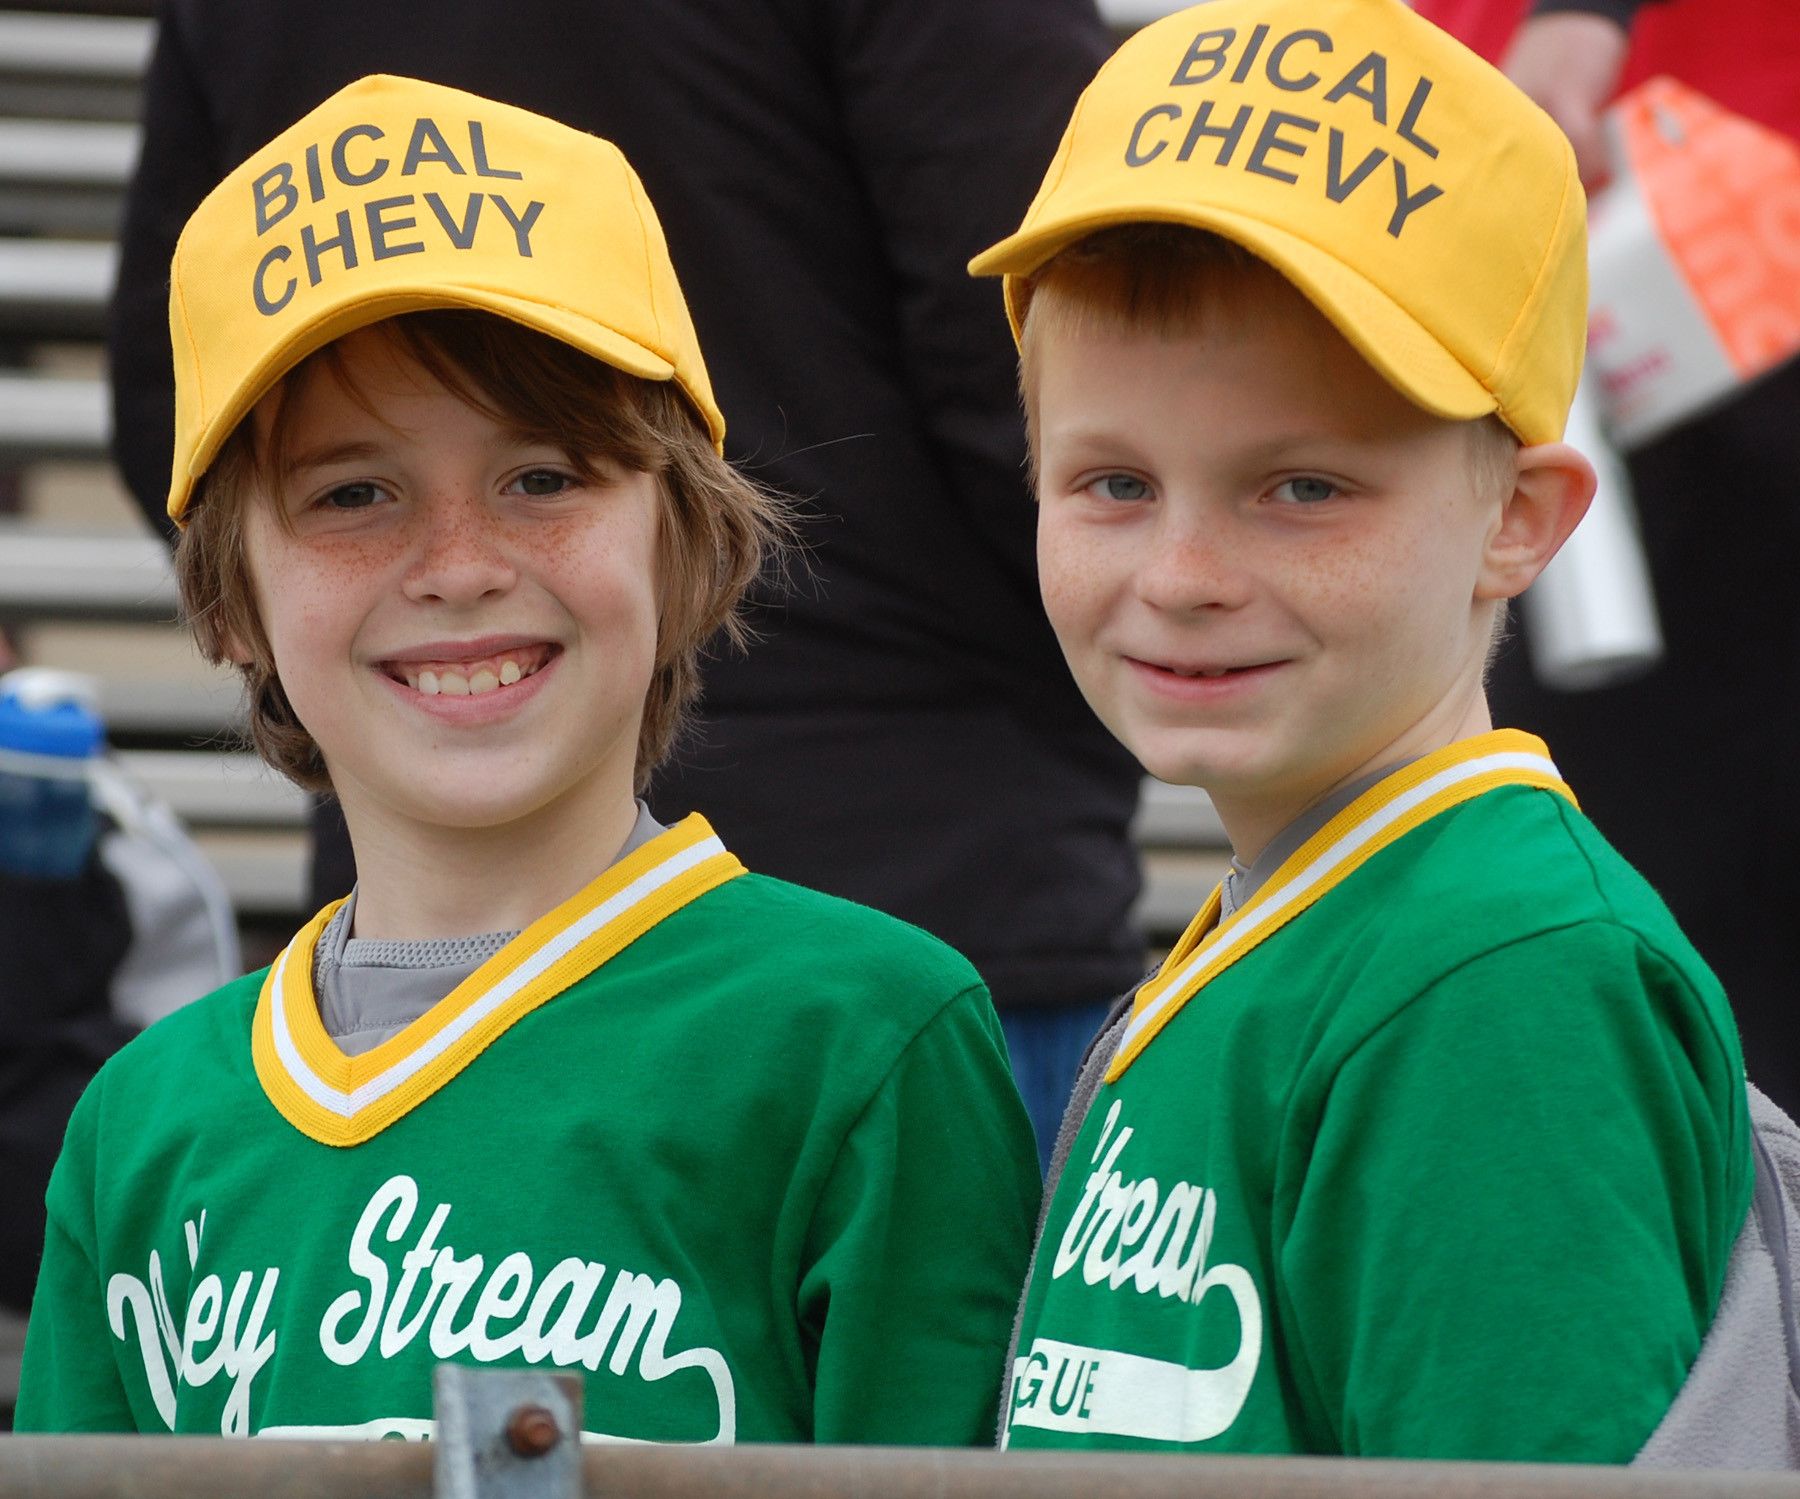 Jake Cresser, and Kyle Johnston, both 9, were excited for the start of baseball season.